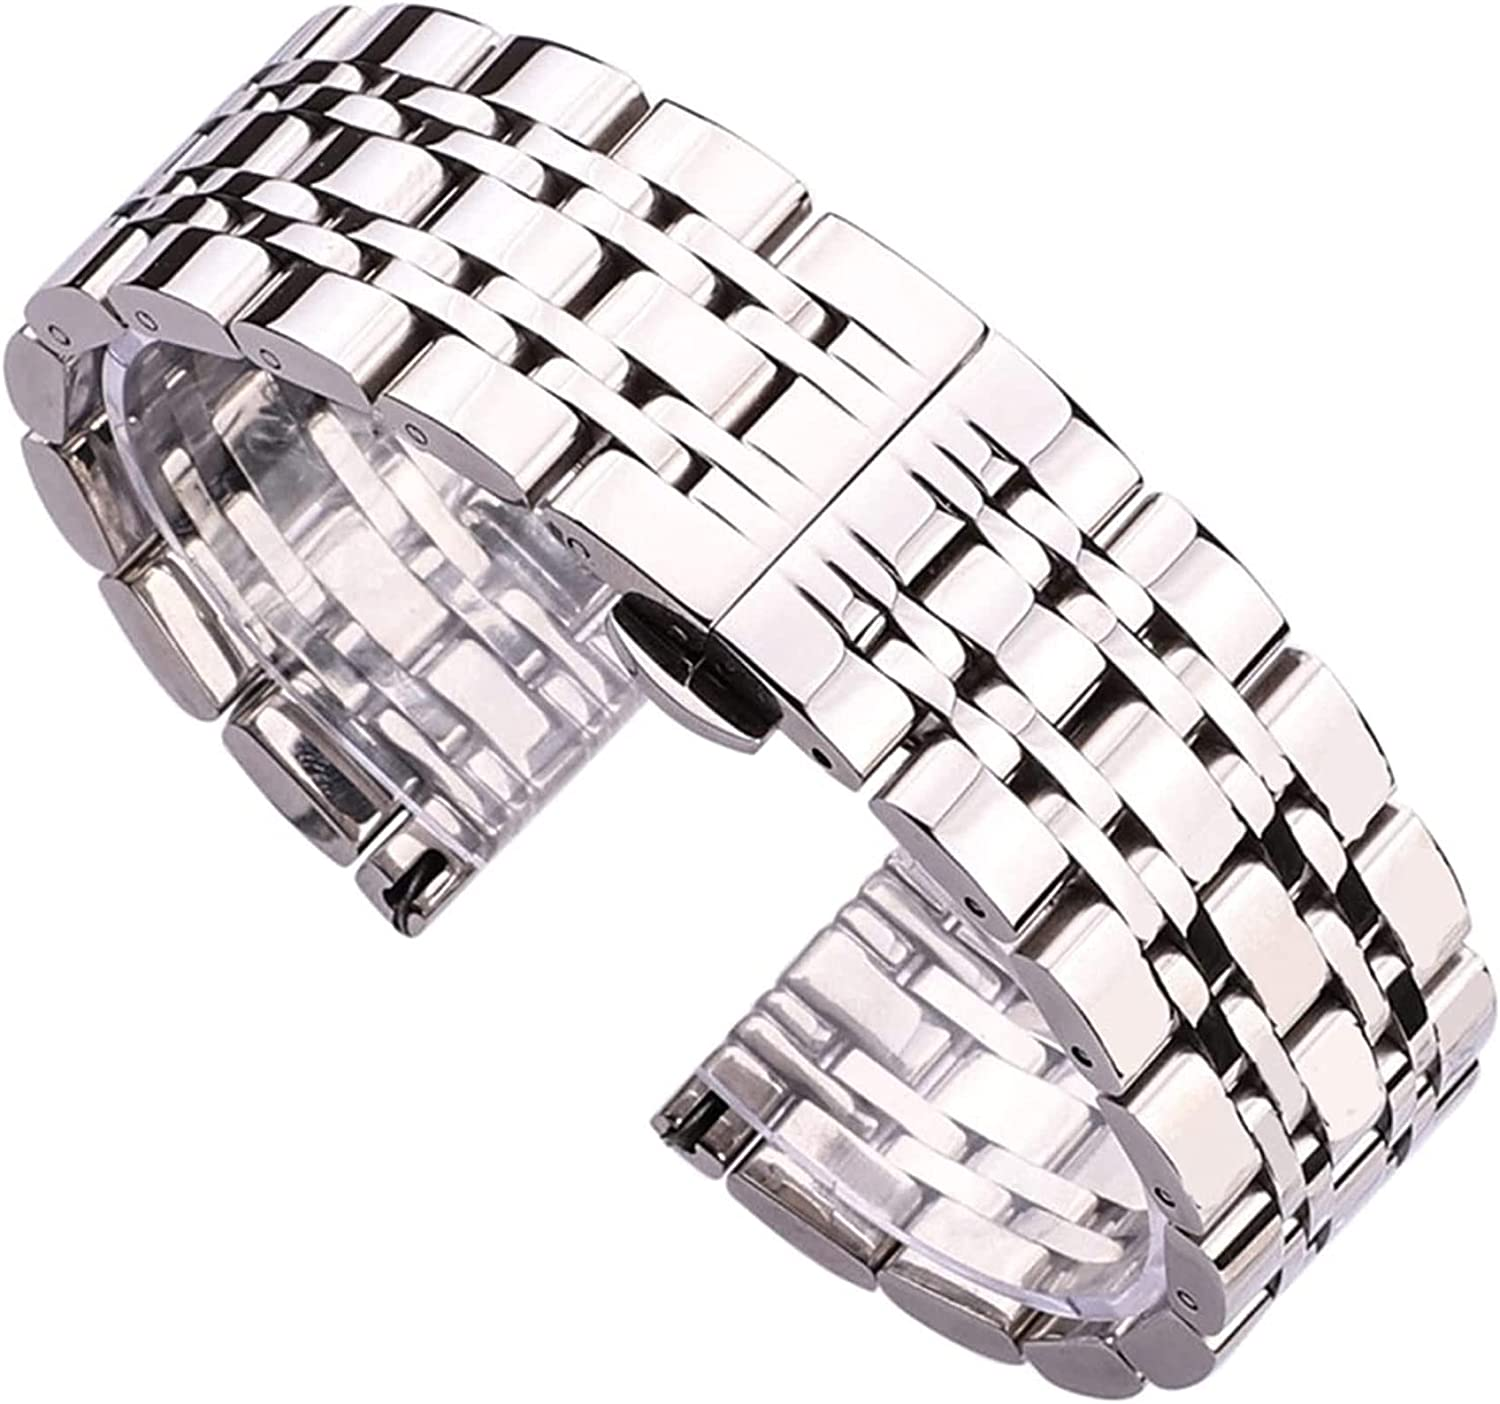 Selling and selling chenghuax Watch Strap Stainless Steel Free shipping on posting reviews 20mm Watchband Bracelet 2